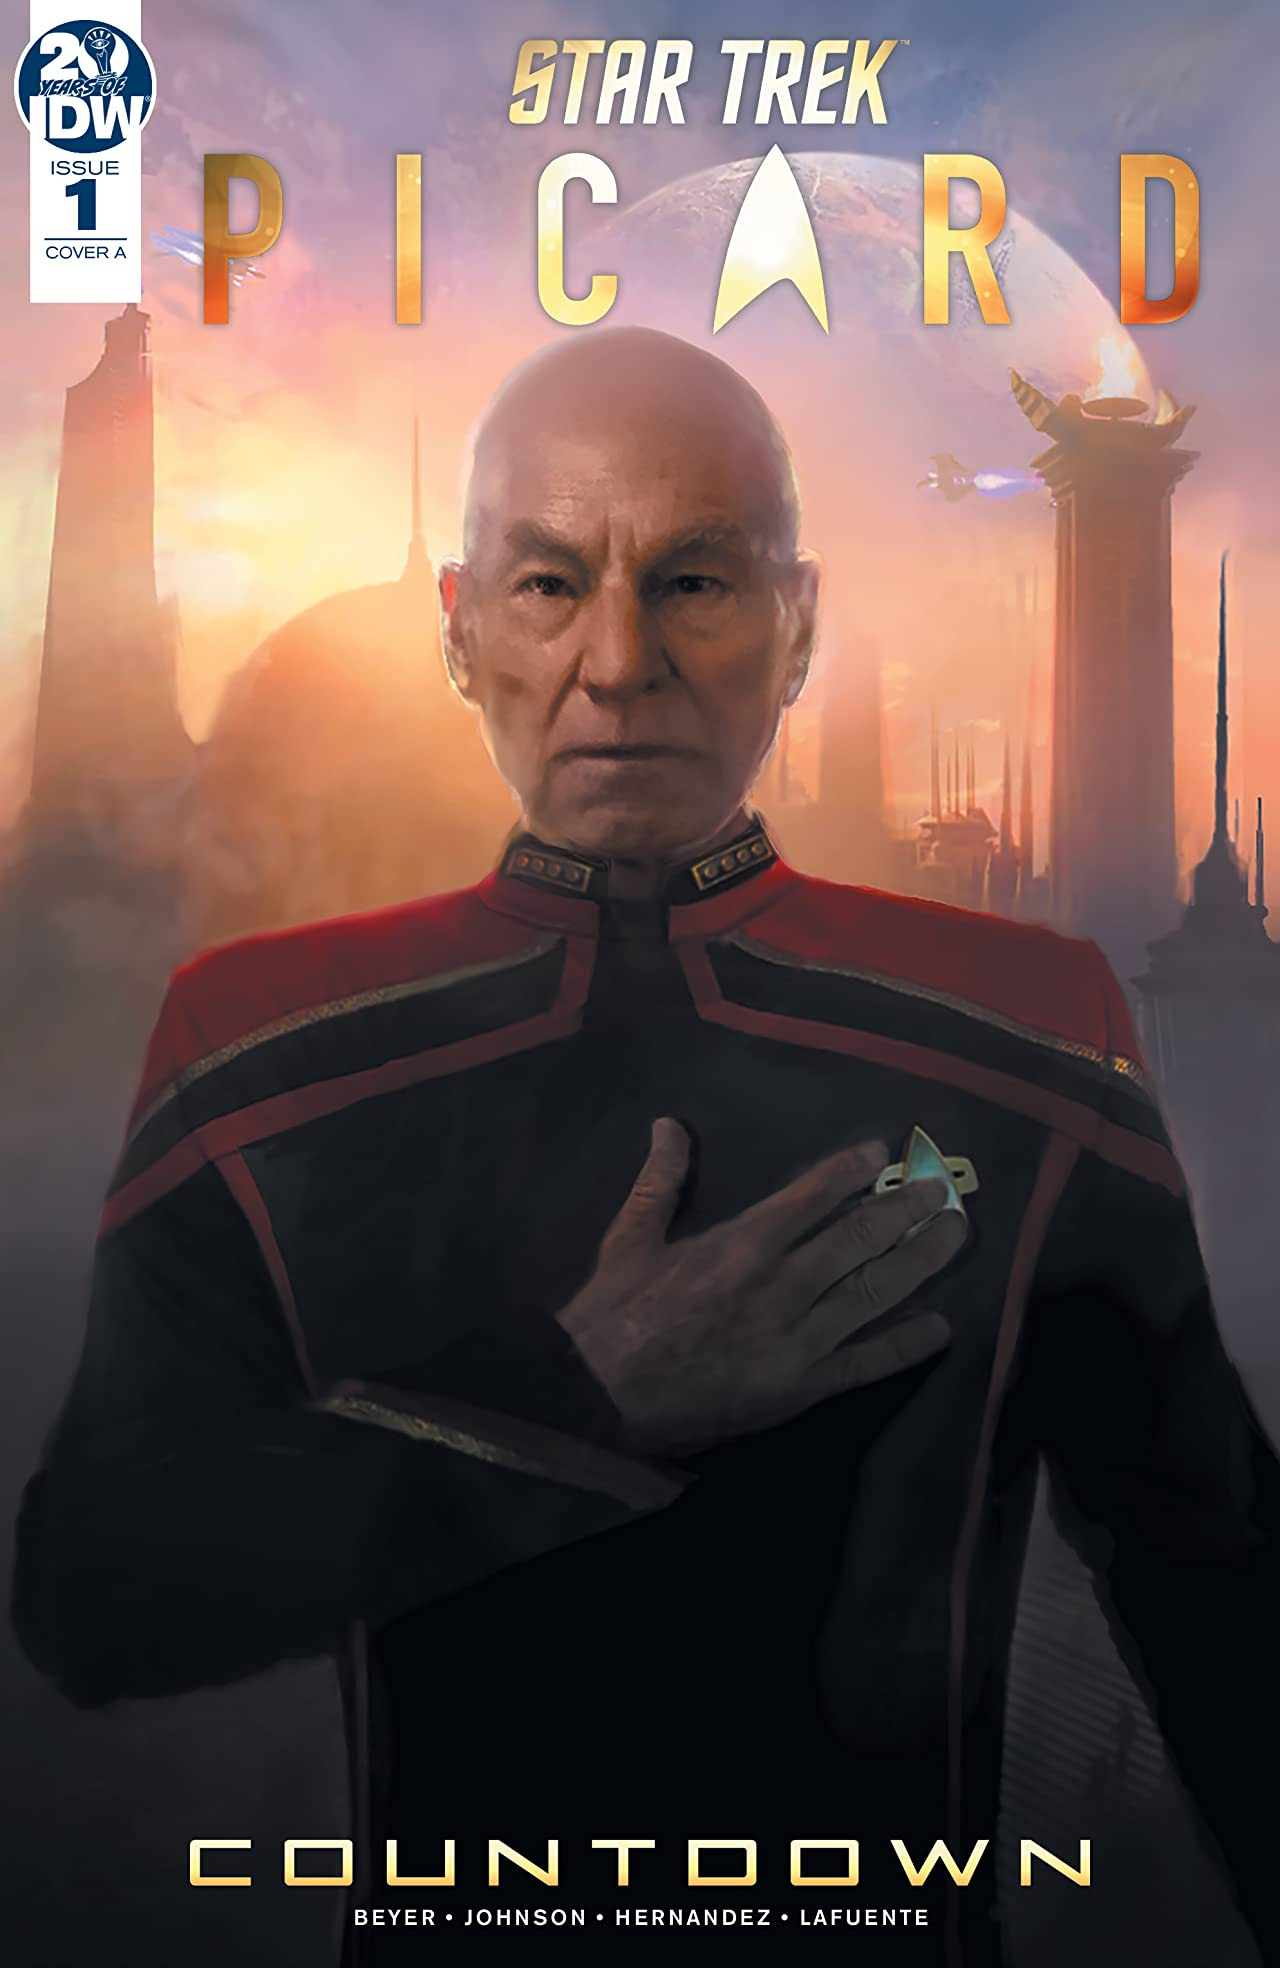 Star Trek: Picard—Countdown #1 (of 3)